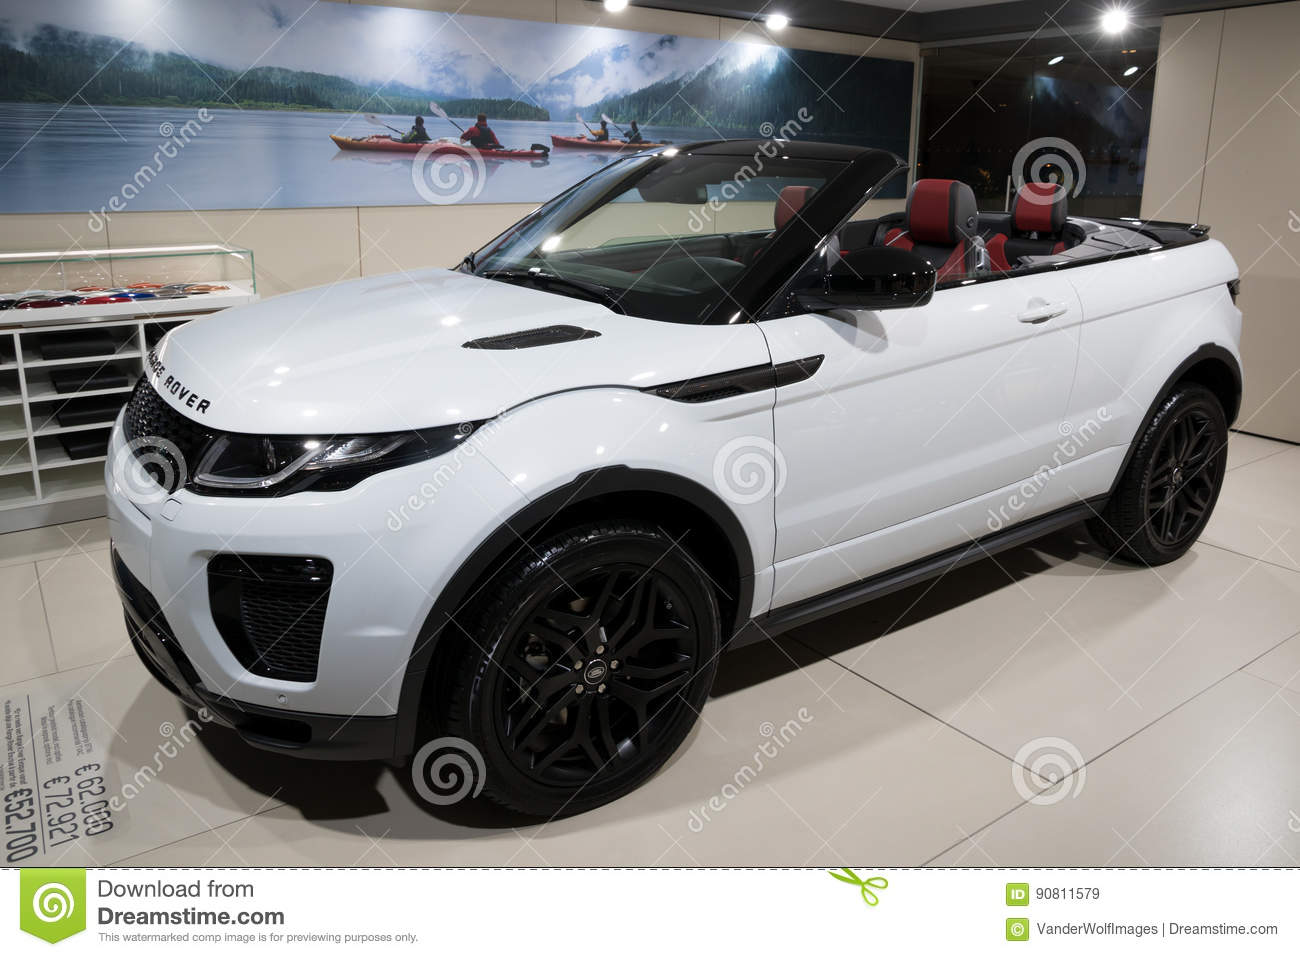 Salon Convertible Range Rover Evoque Convertible Car Editorial Stock Image Image